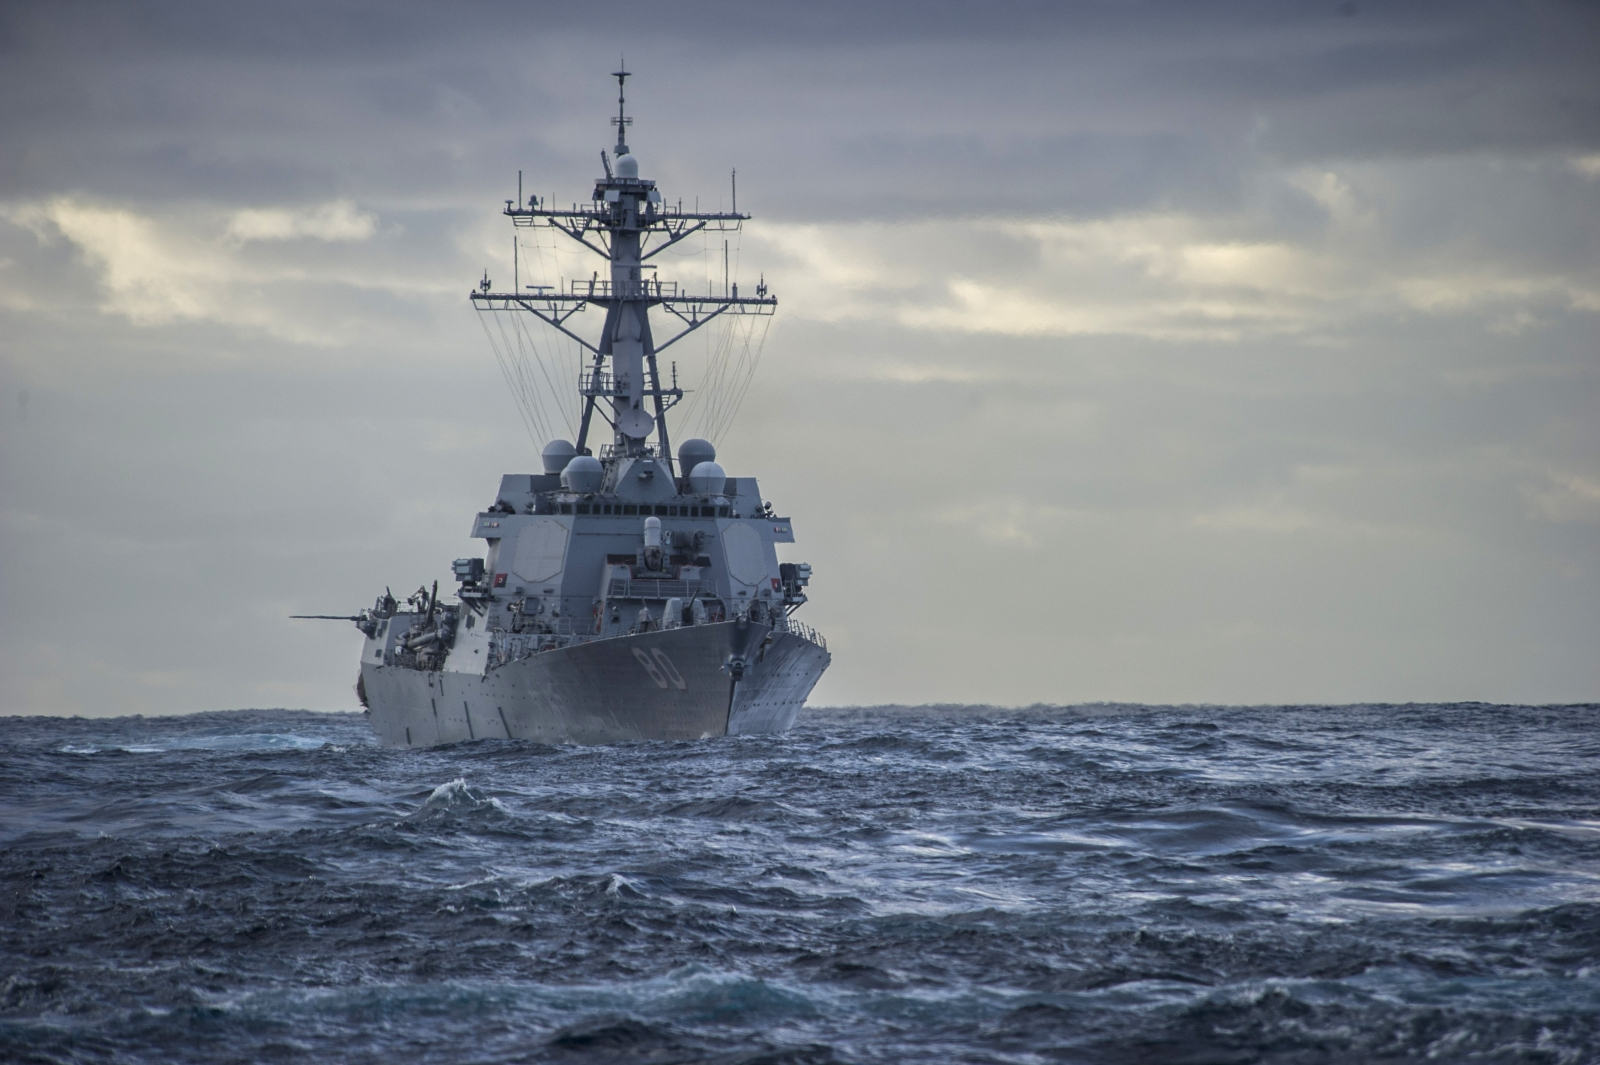 US Navy Ship Fires Warning Shot at Armed Iranian Dhow in Volatile Persian Gulf